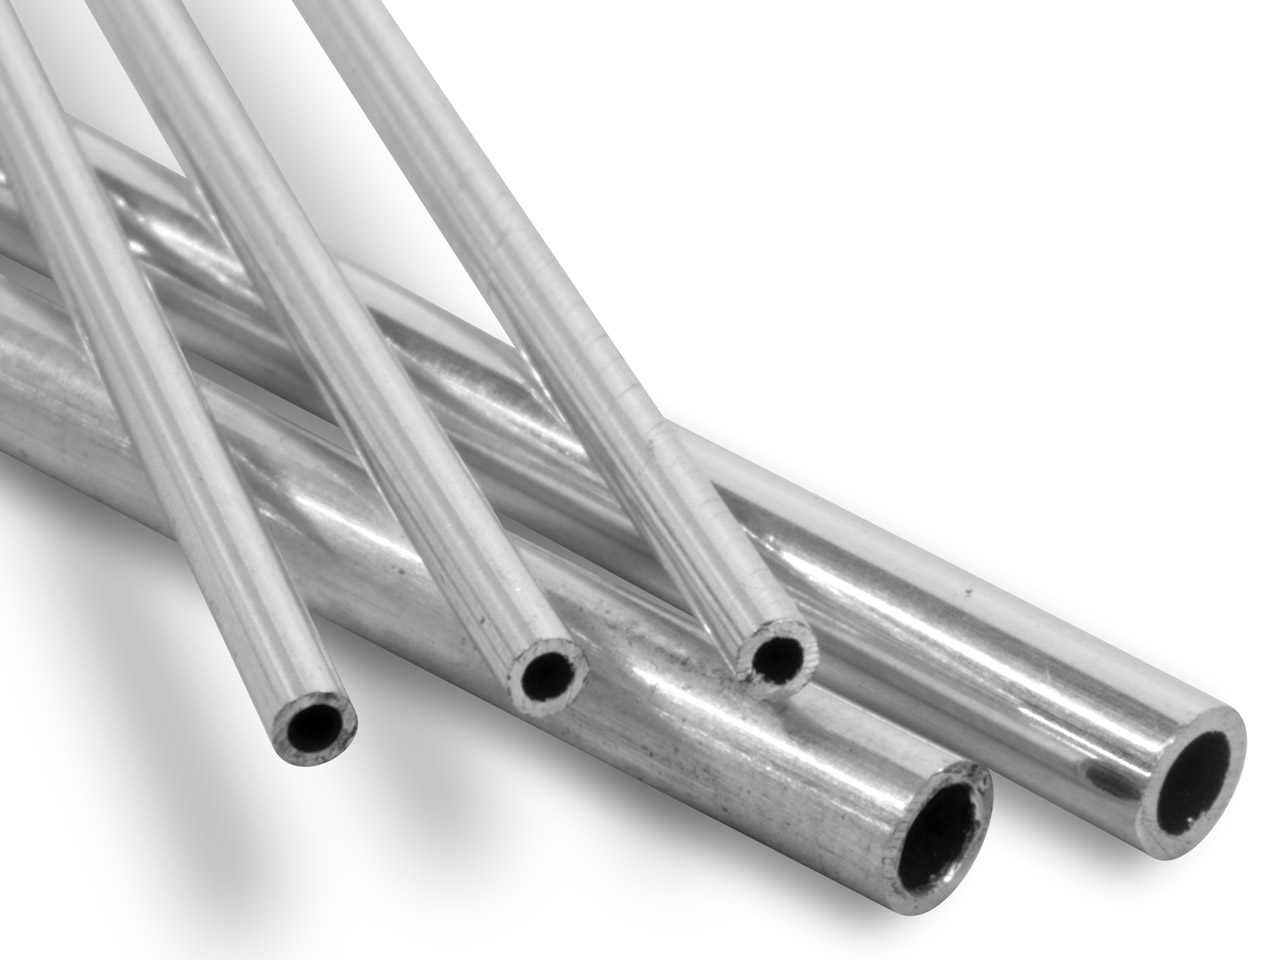 Sterling Silver Tube, Ref 1,       Outside Diameter 5.0mm,            Inside Diameter 3.8mm, 0.6mm Wall  Thickness